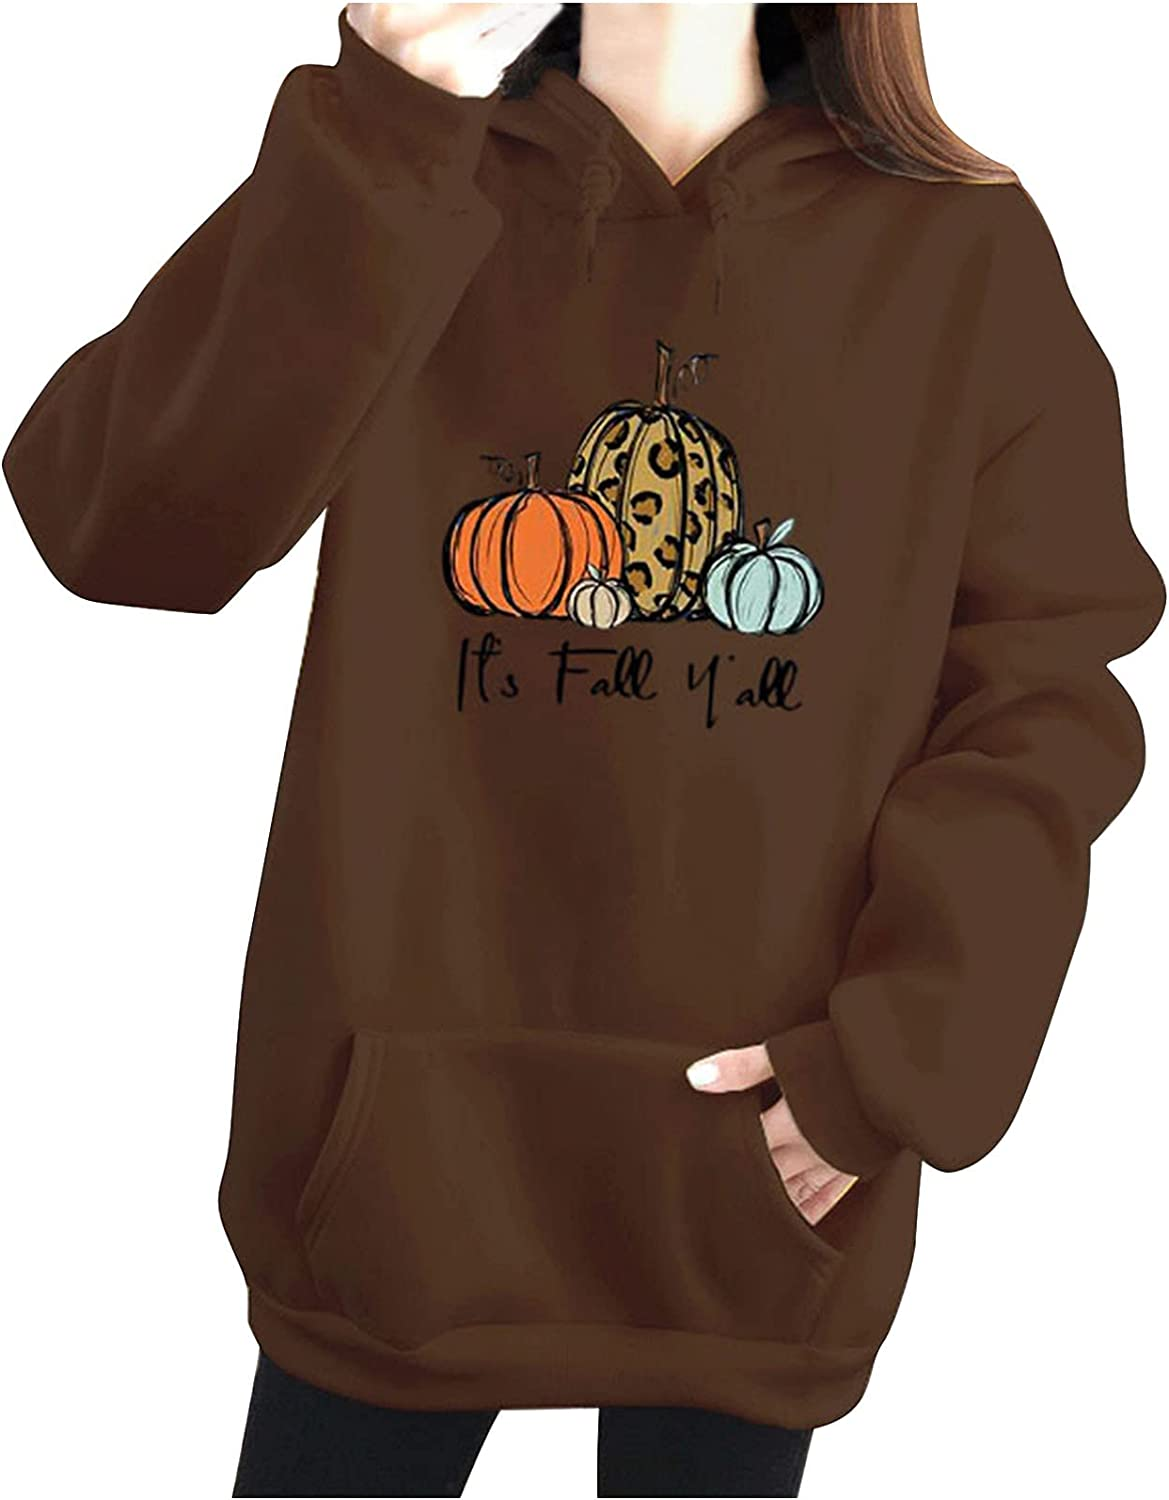 Max 69% OFF It's Fall Yall Hoodies for Women Long Warm Pumpkin Print Sleeve Al sold out.